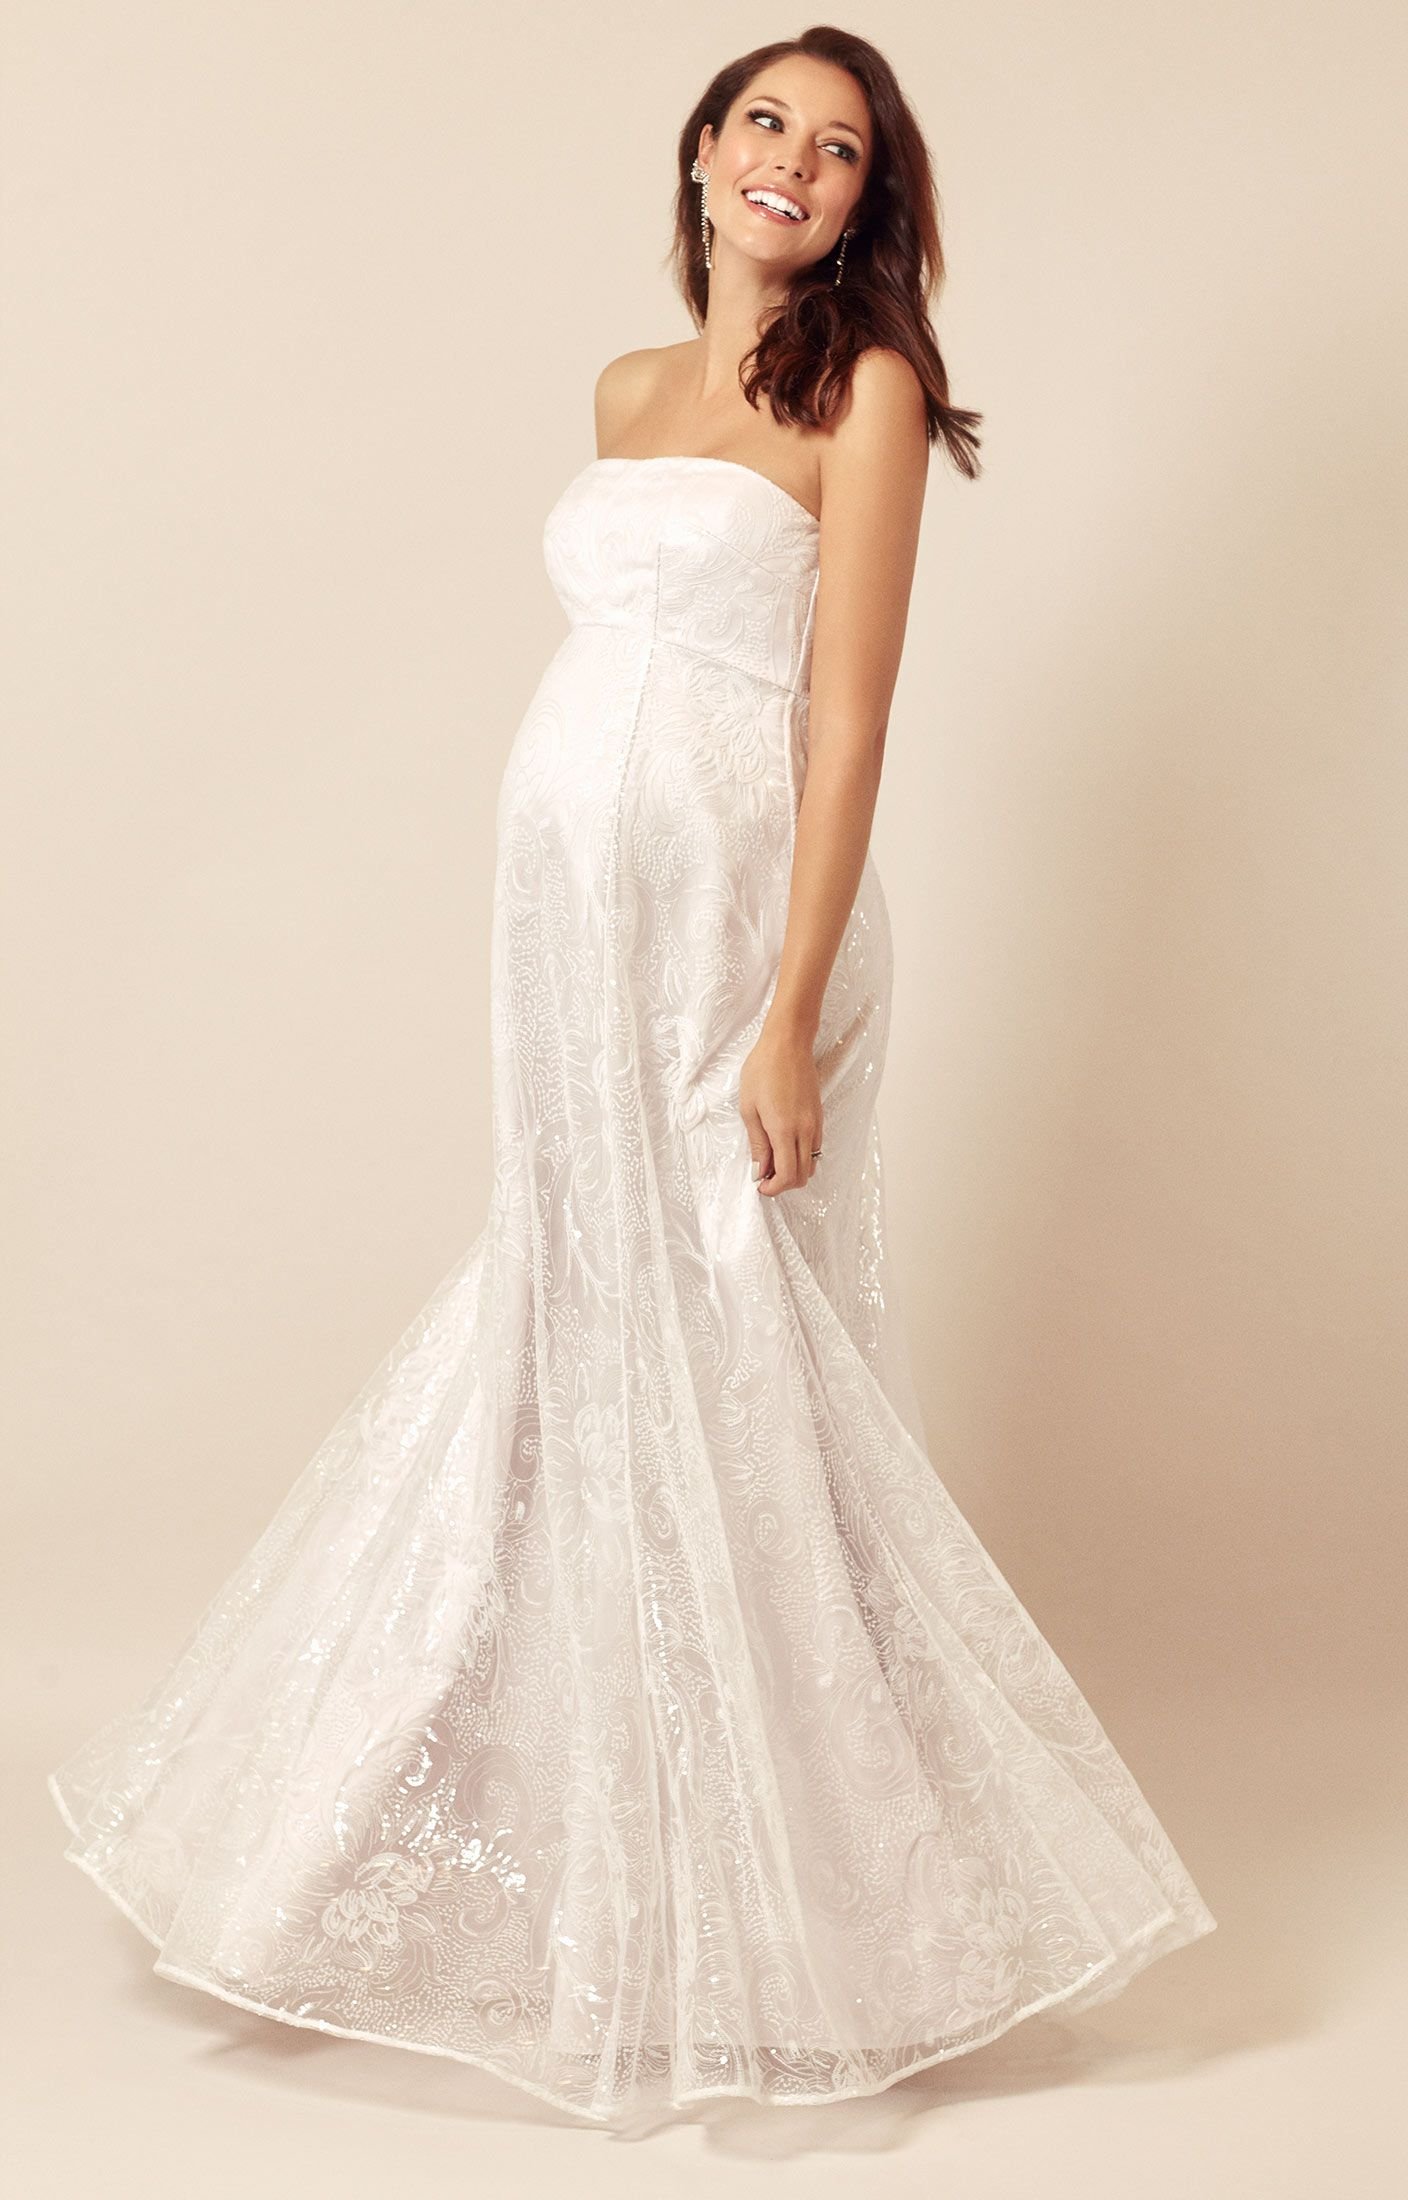 Evita Maternity Gown Antique Shimmer – Maternity Wedding Dresses, Evening Wear and Party Clothes by Tiffany Rose